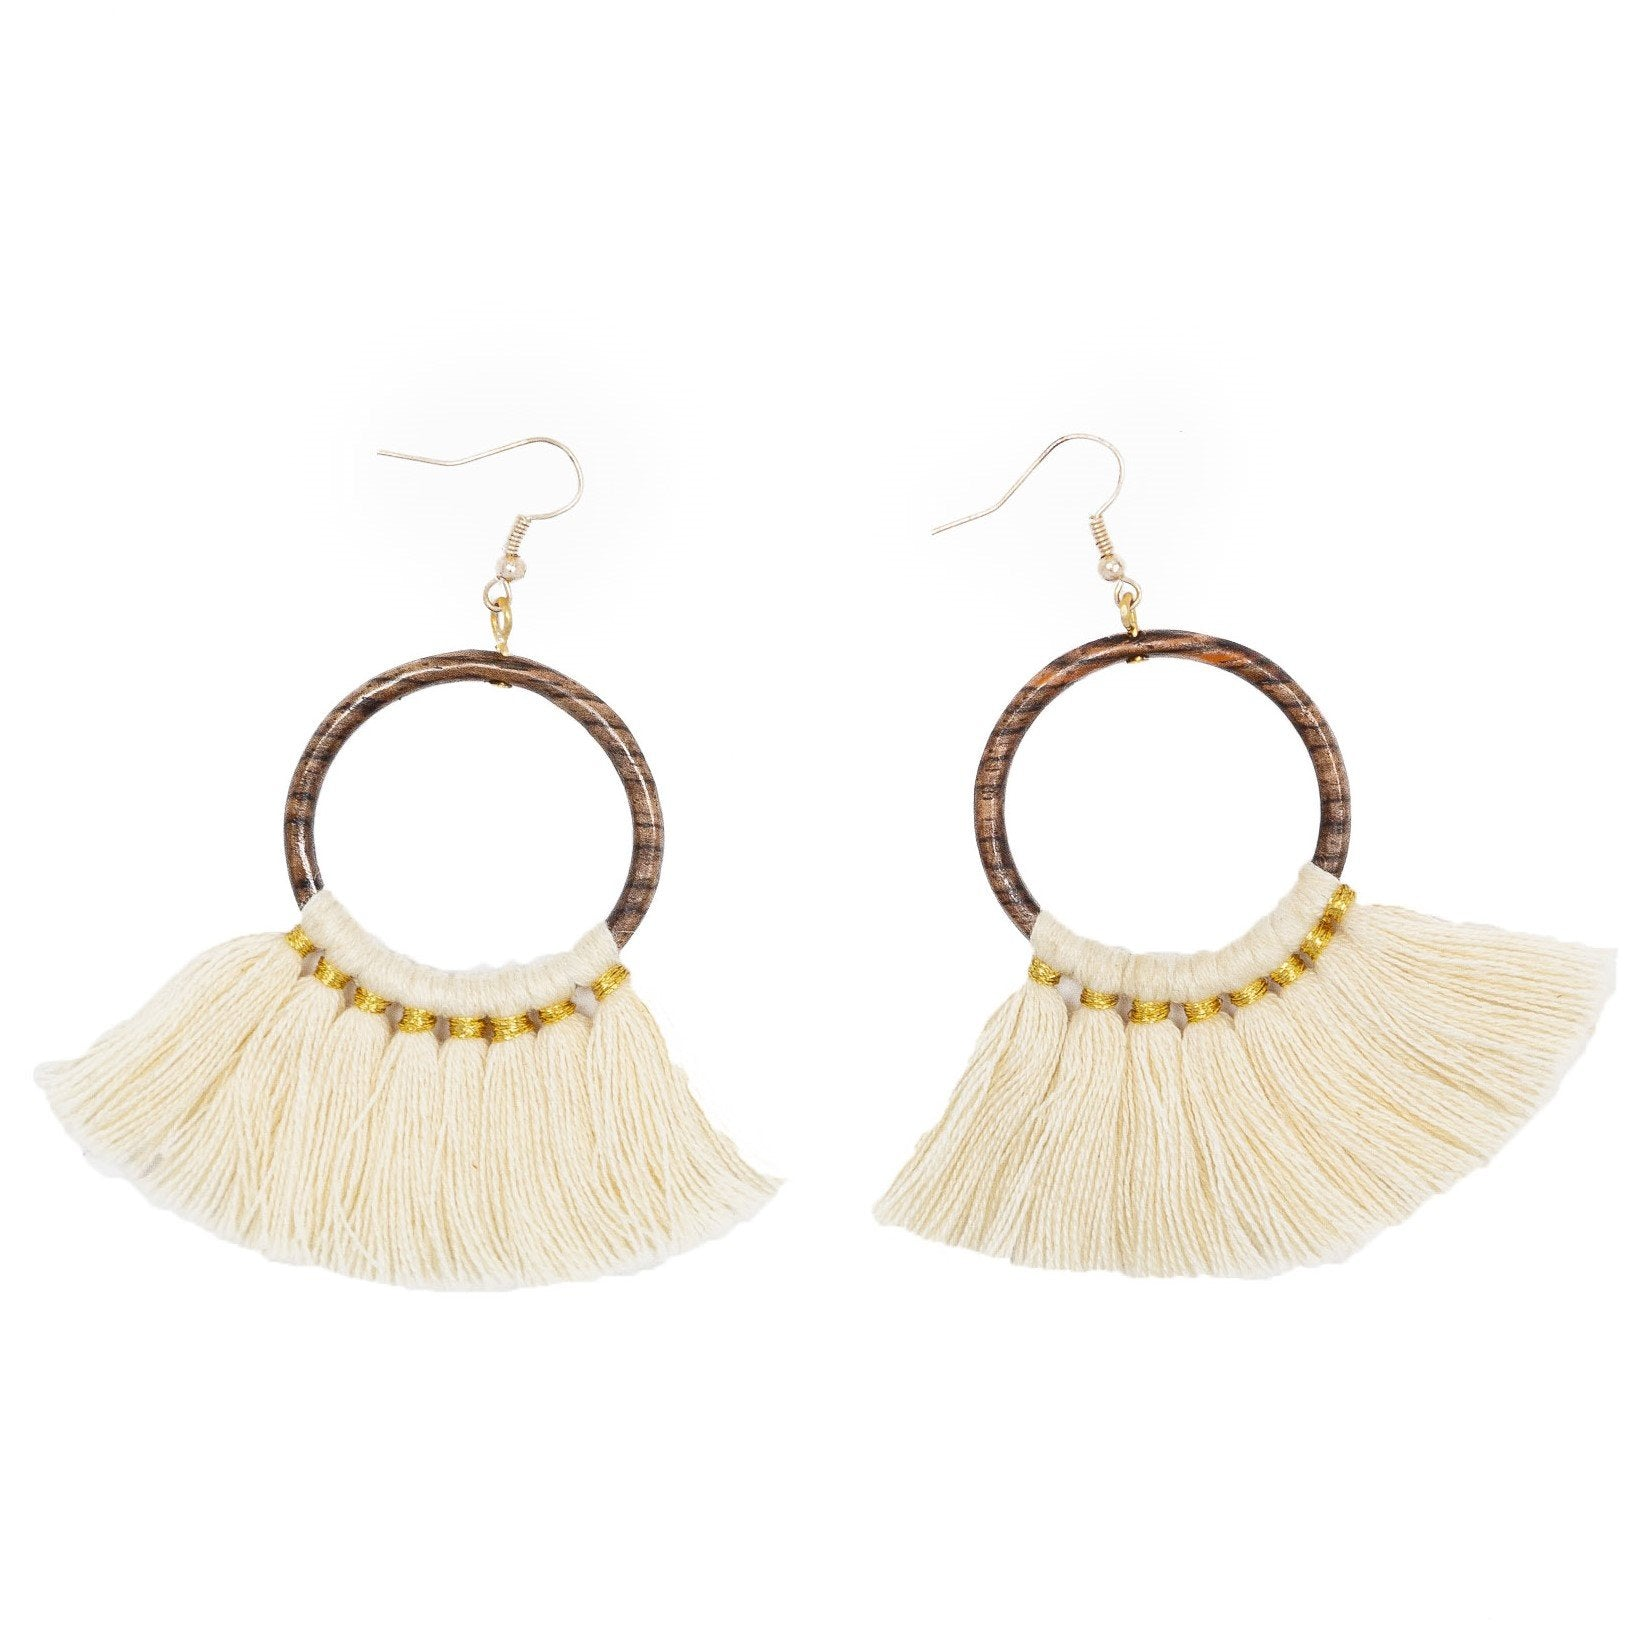 Fair Trade Fringe Wood Hoop Earrings